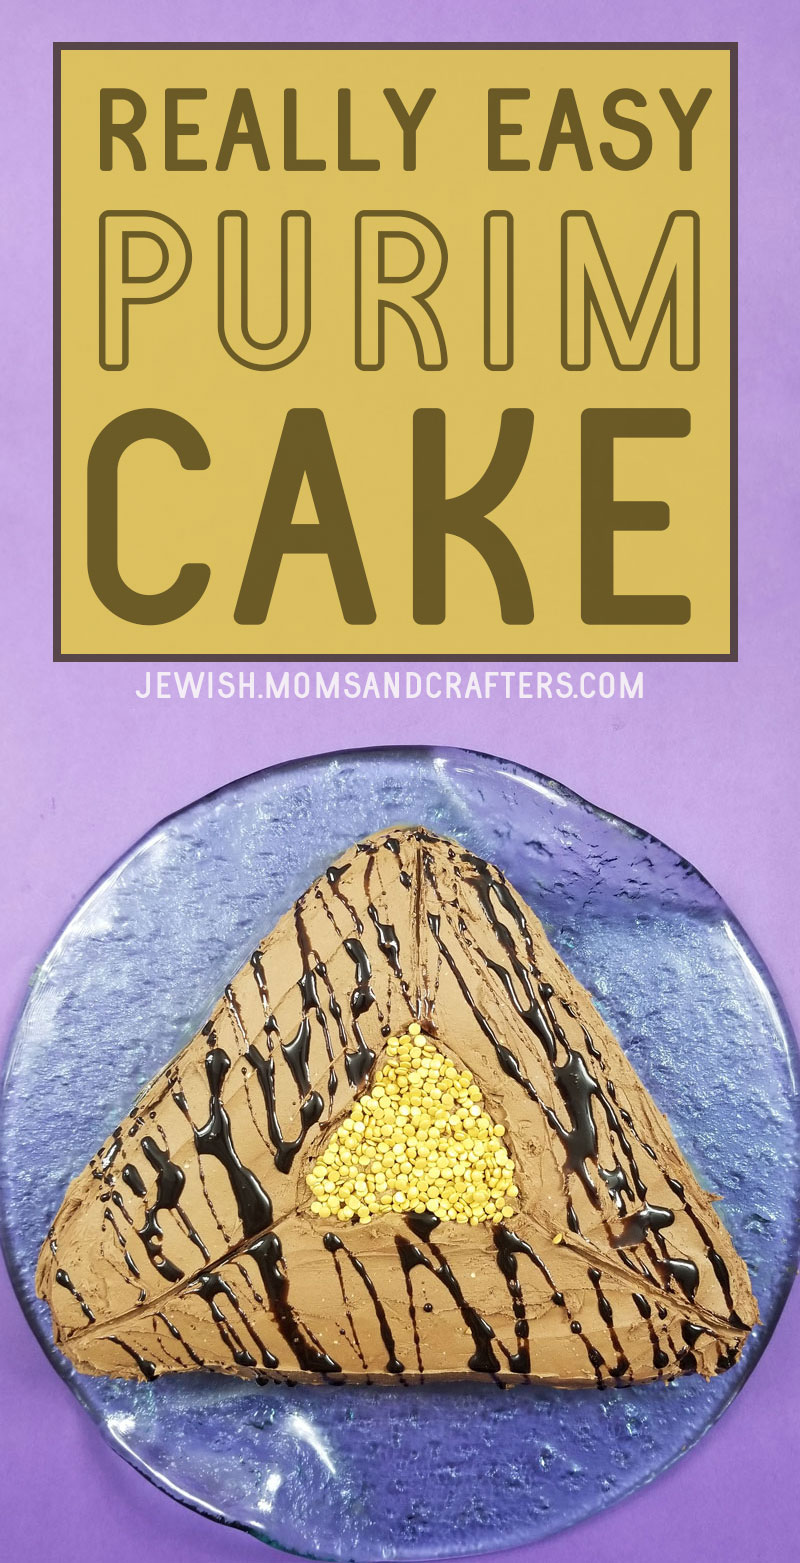 You don't need to be a pro to decorate a really easy purim cake! This cake decorating tutorial for beginners is a fantastic Purim party idea and is a great way to celebrate the Jewish holiday. No recipe needed - you can use your favorite cake or cake mix